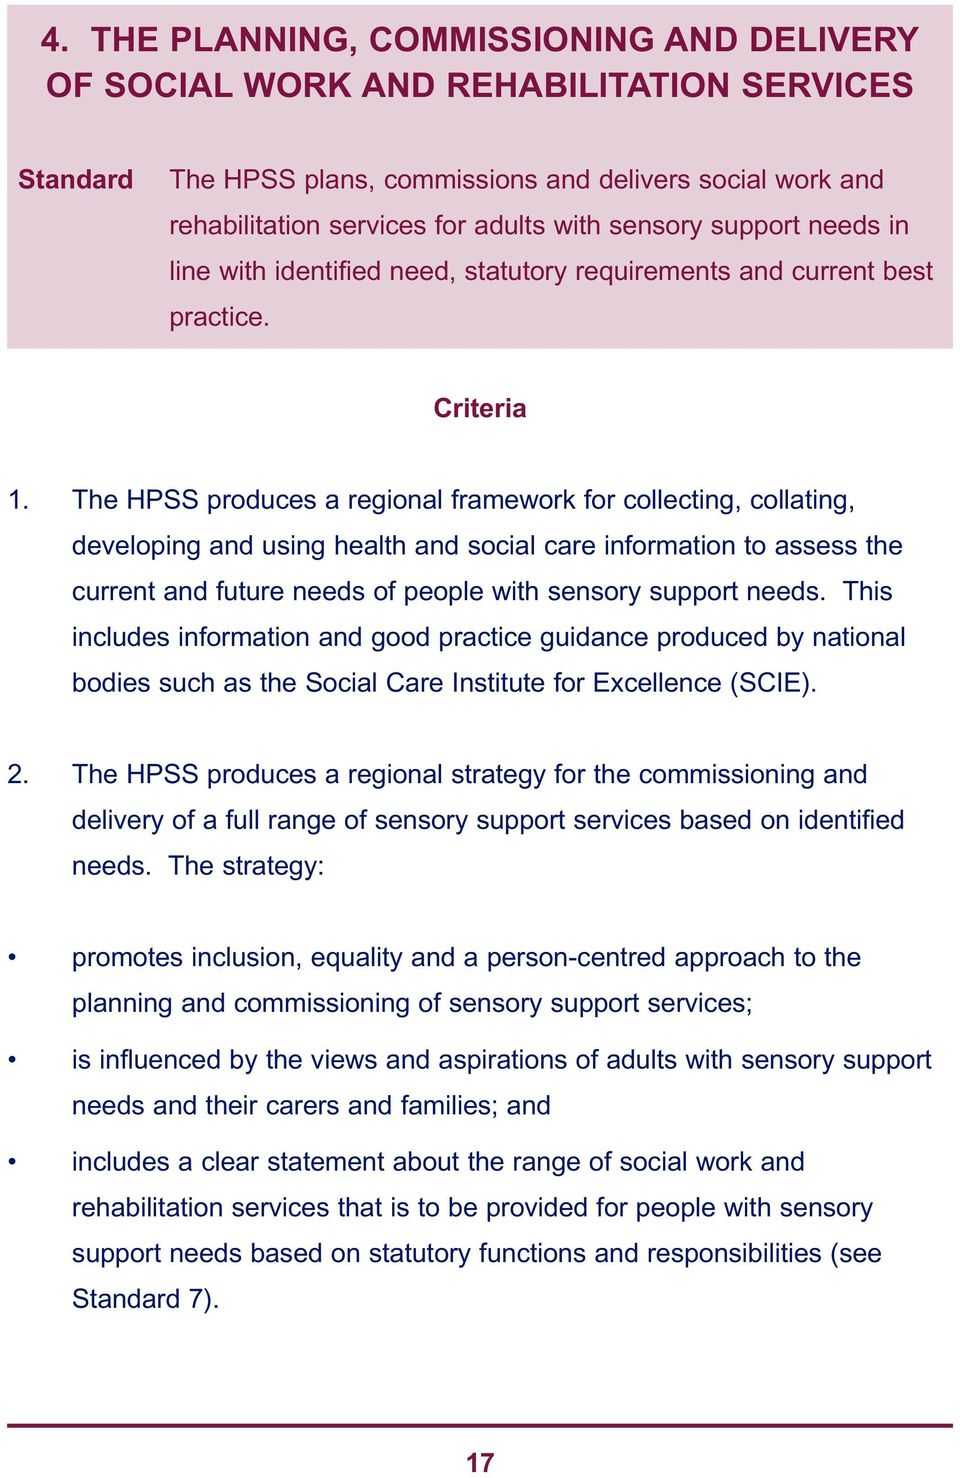 The HPSS produces a regional framework for collecting, collating, developing and using health and social care information to assess the current and future needs of people with sensory support needs.